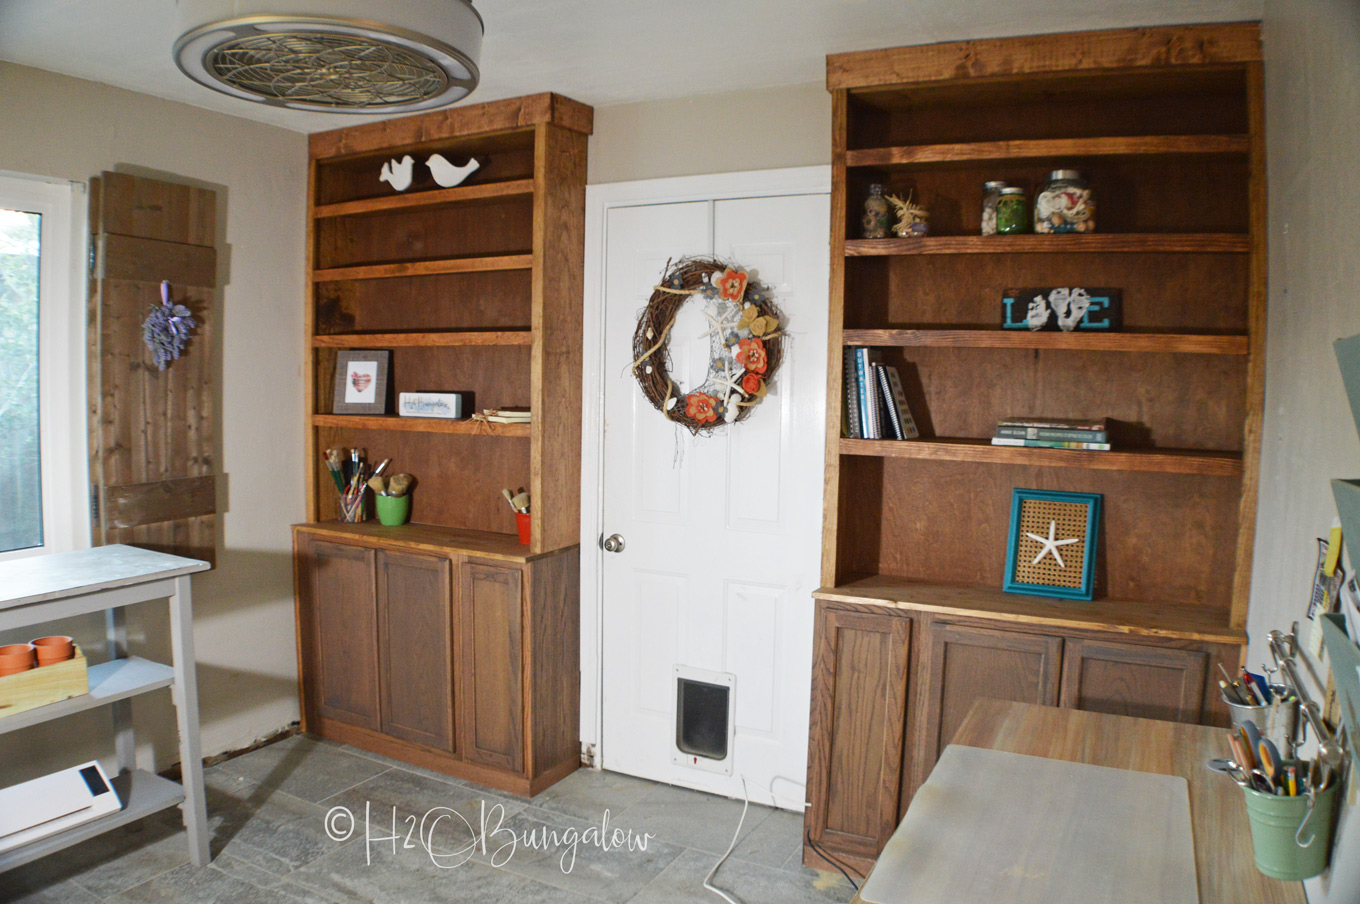 How To Build Built In Bookcases With Cabinets Is A Detailed Diy Tutorial Lots Of